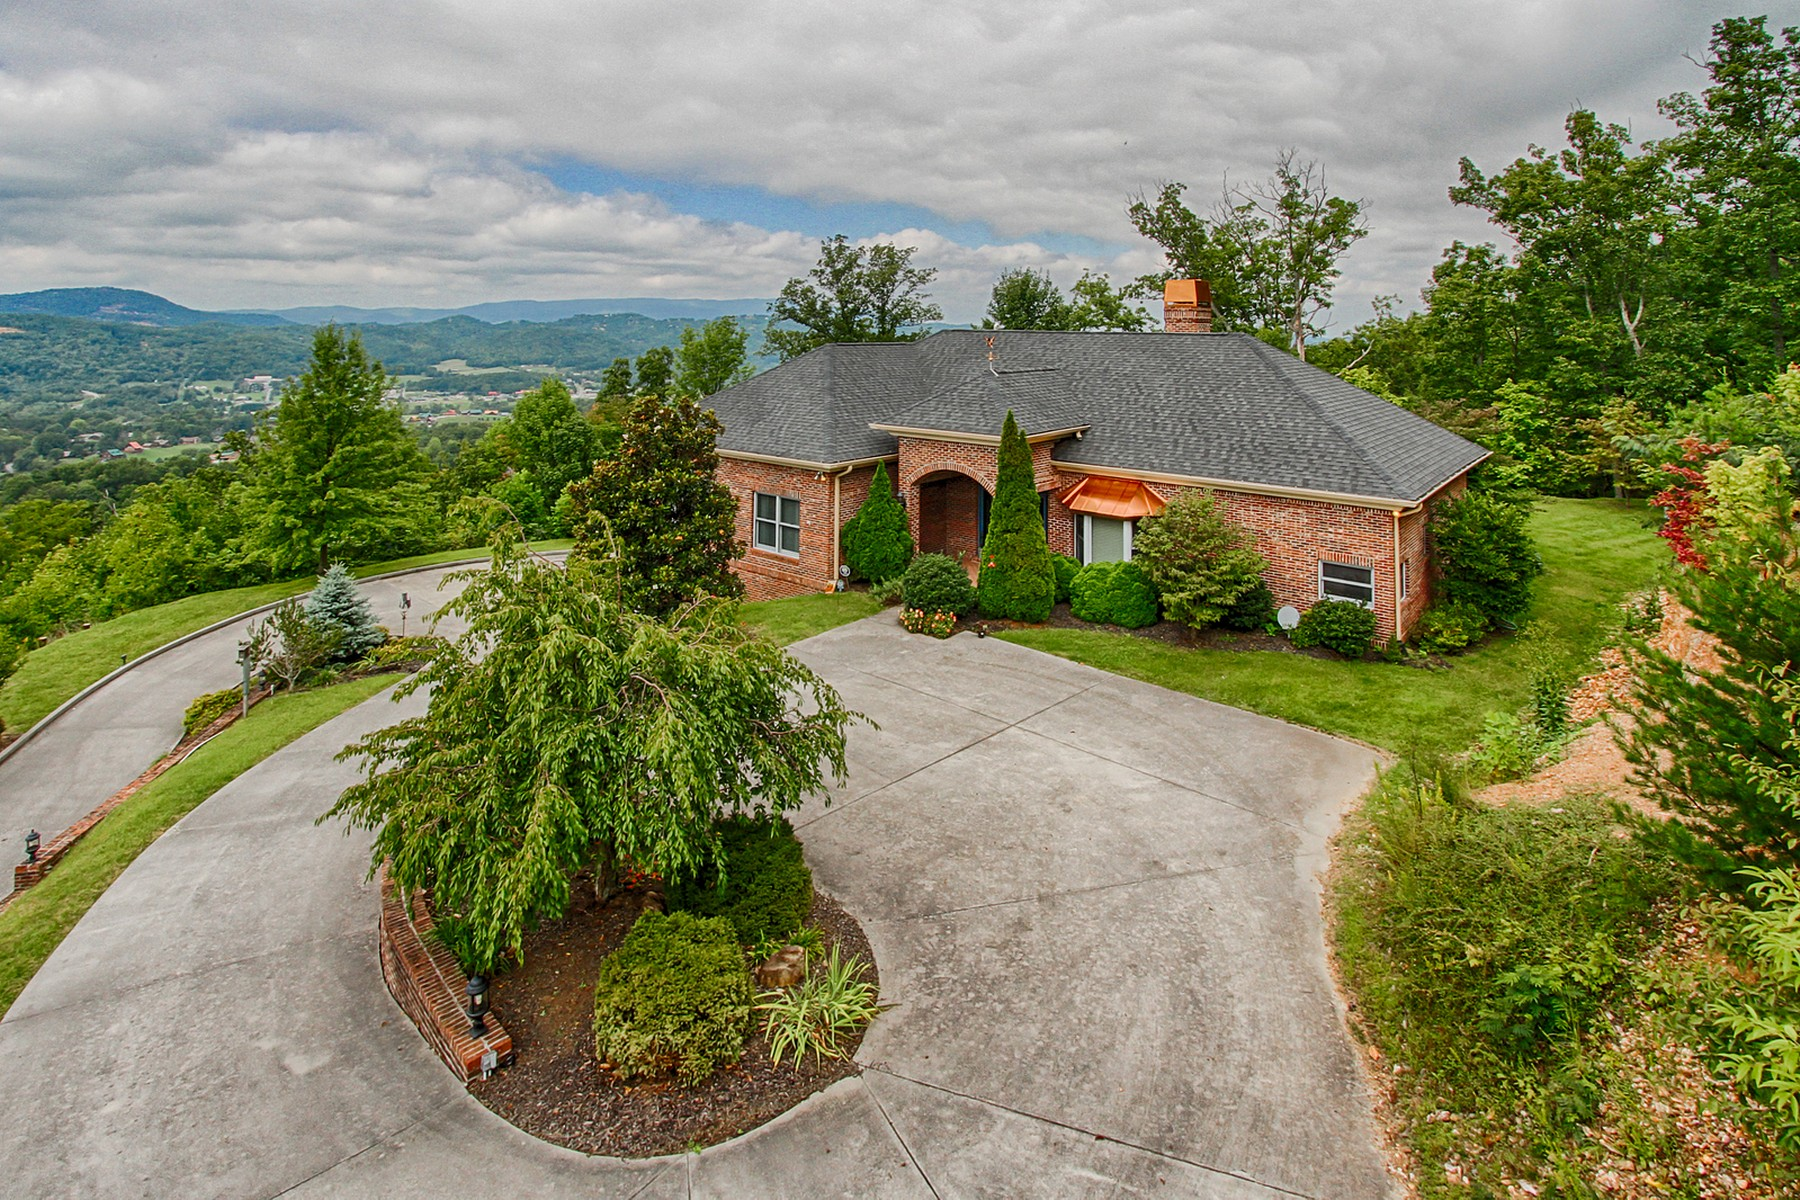 Single Family Home for Sale at Gorgeous Views of the Tennessee Smoky Mountains! 3121 Smokies Edge Road Sevierville, Tennessee 37862 United States